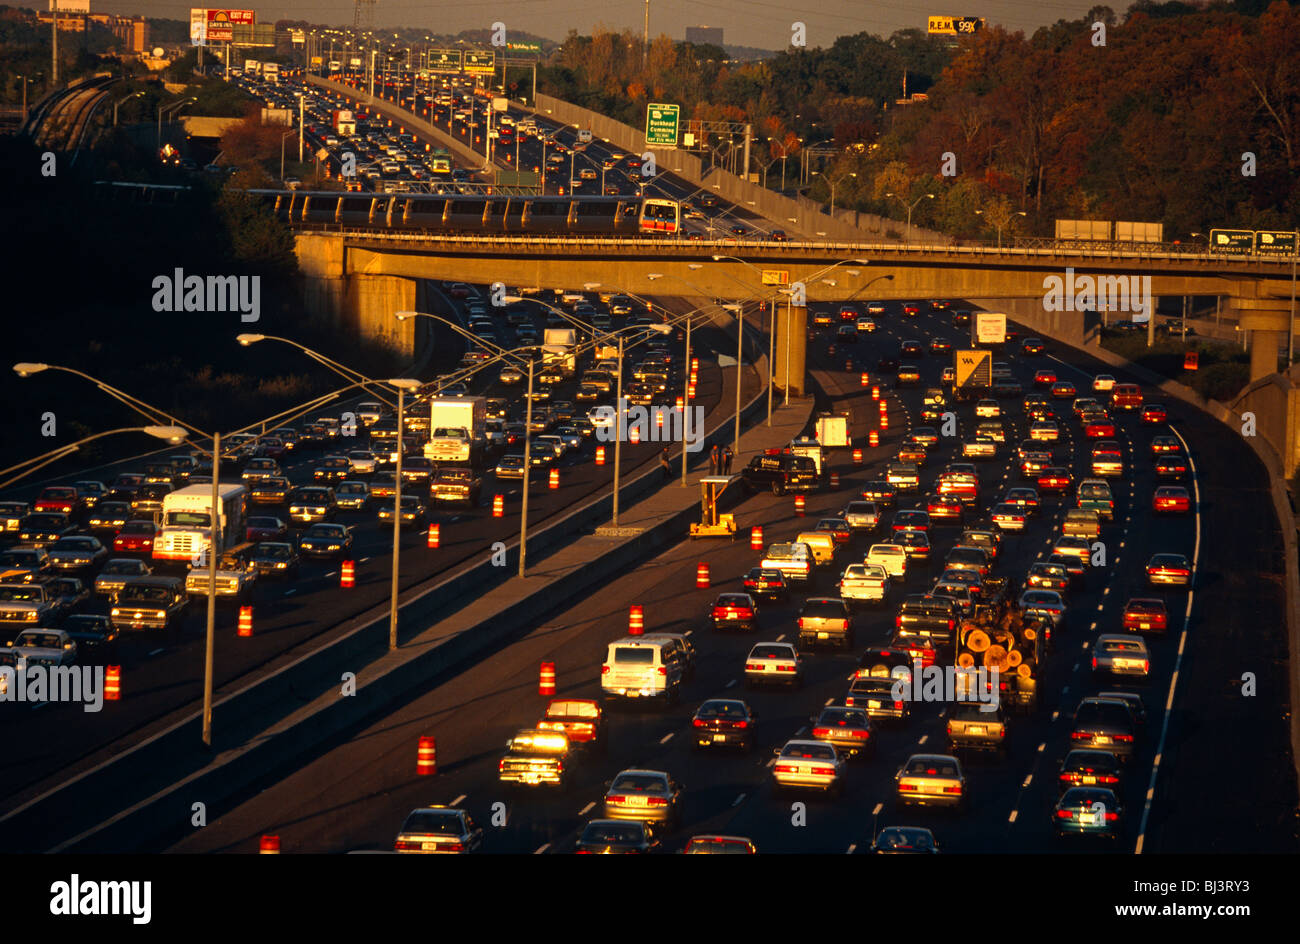 Afternoon rush-hour traffic near the junction of the 400 to Buckhead, Atlanta and 401 highway. - Stock Image